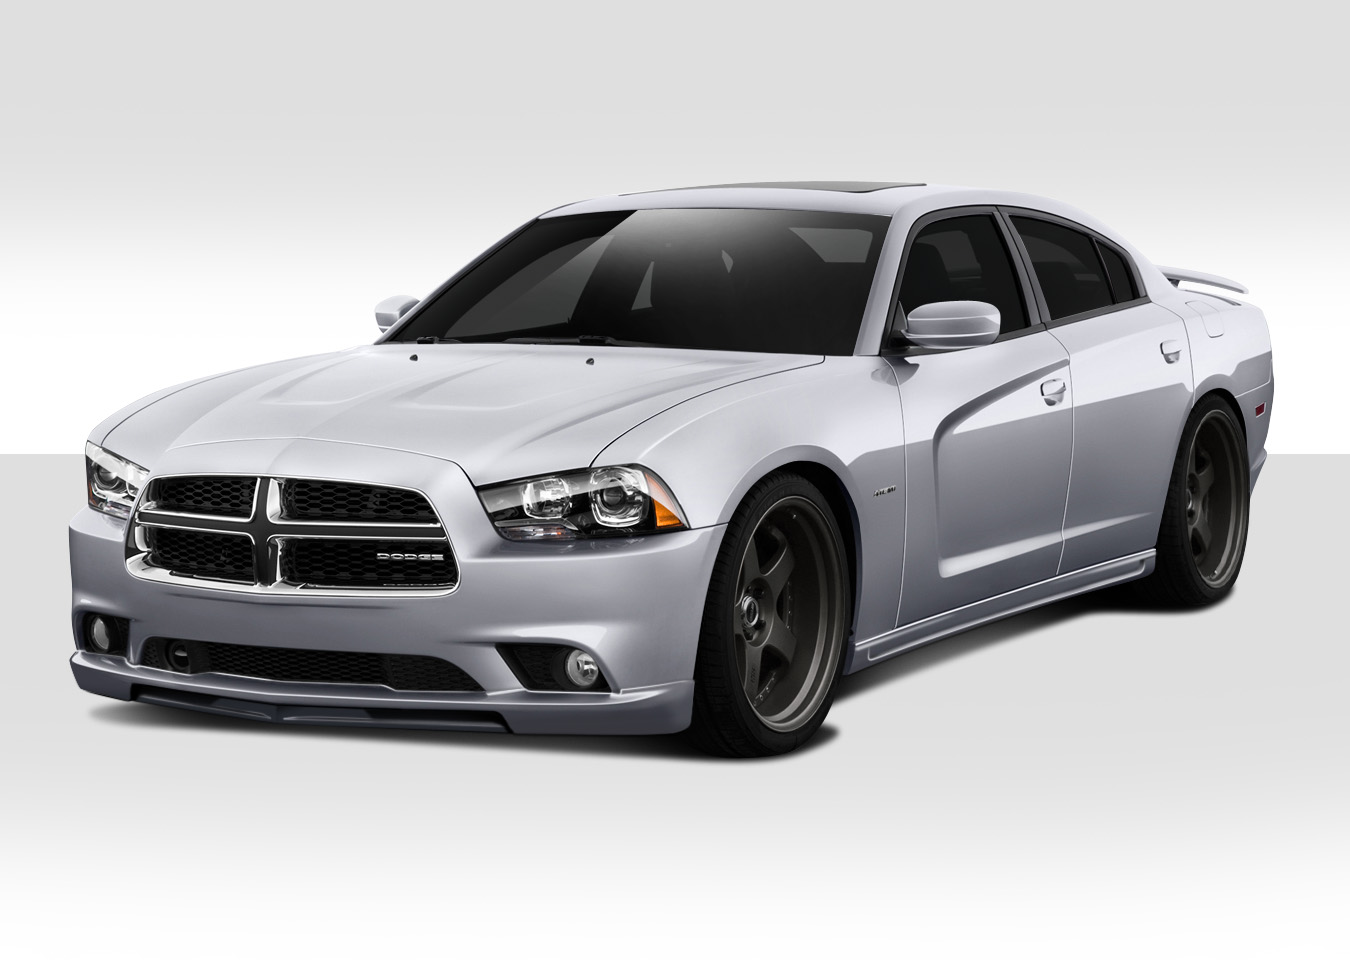 2013 dodge charger fiberglass body kit body kit dodge. Black Bedroom Furniture Sets. Home Design Ideas